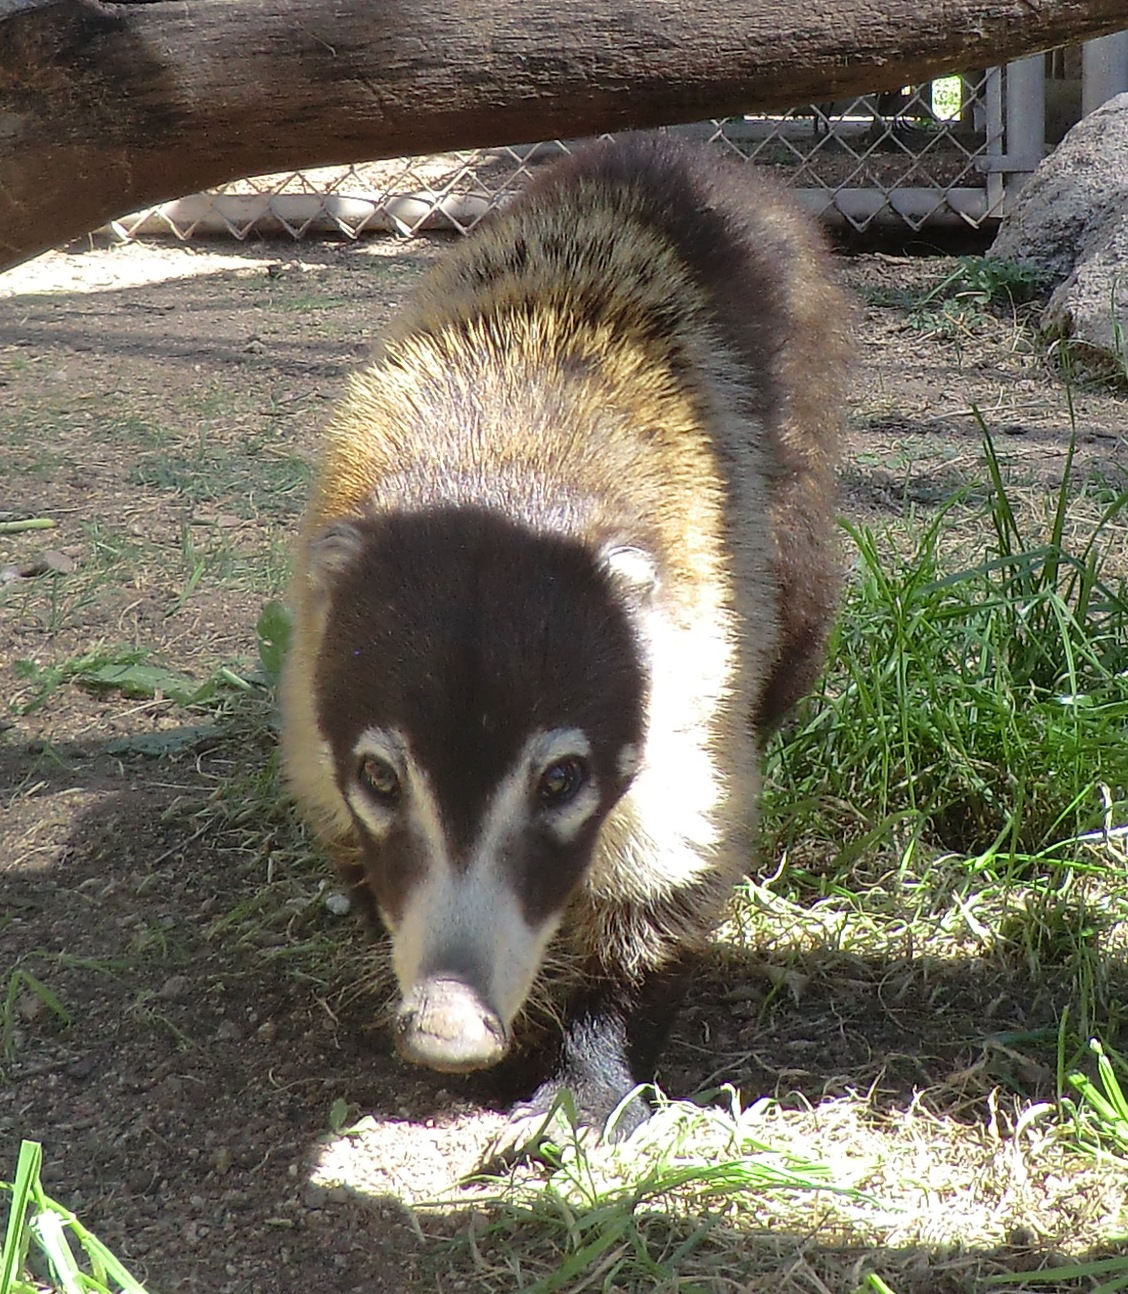 coati-chloe-on-grass002